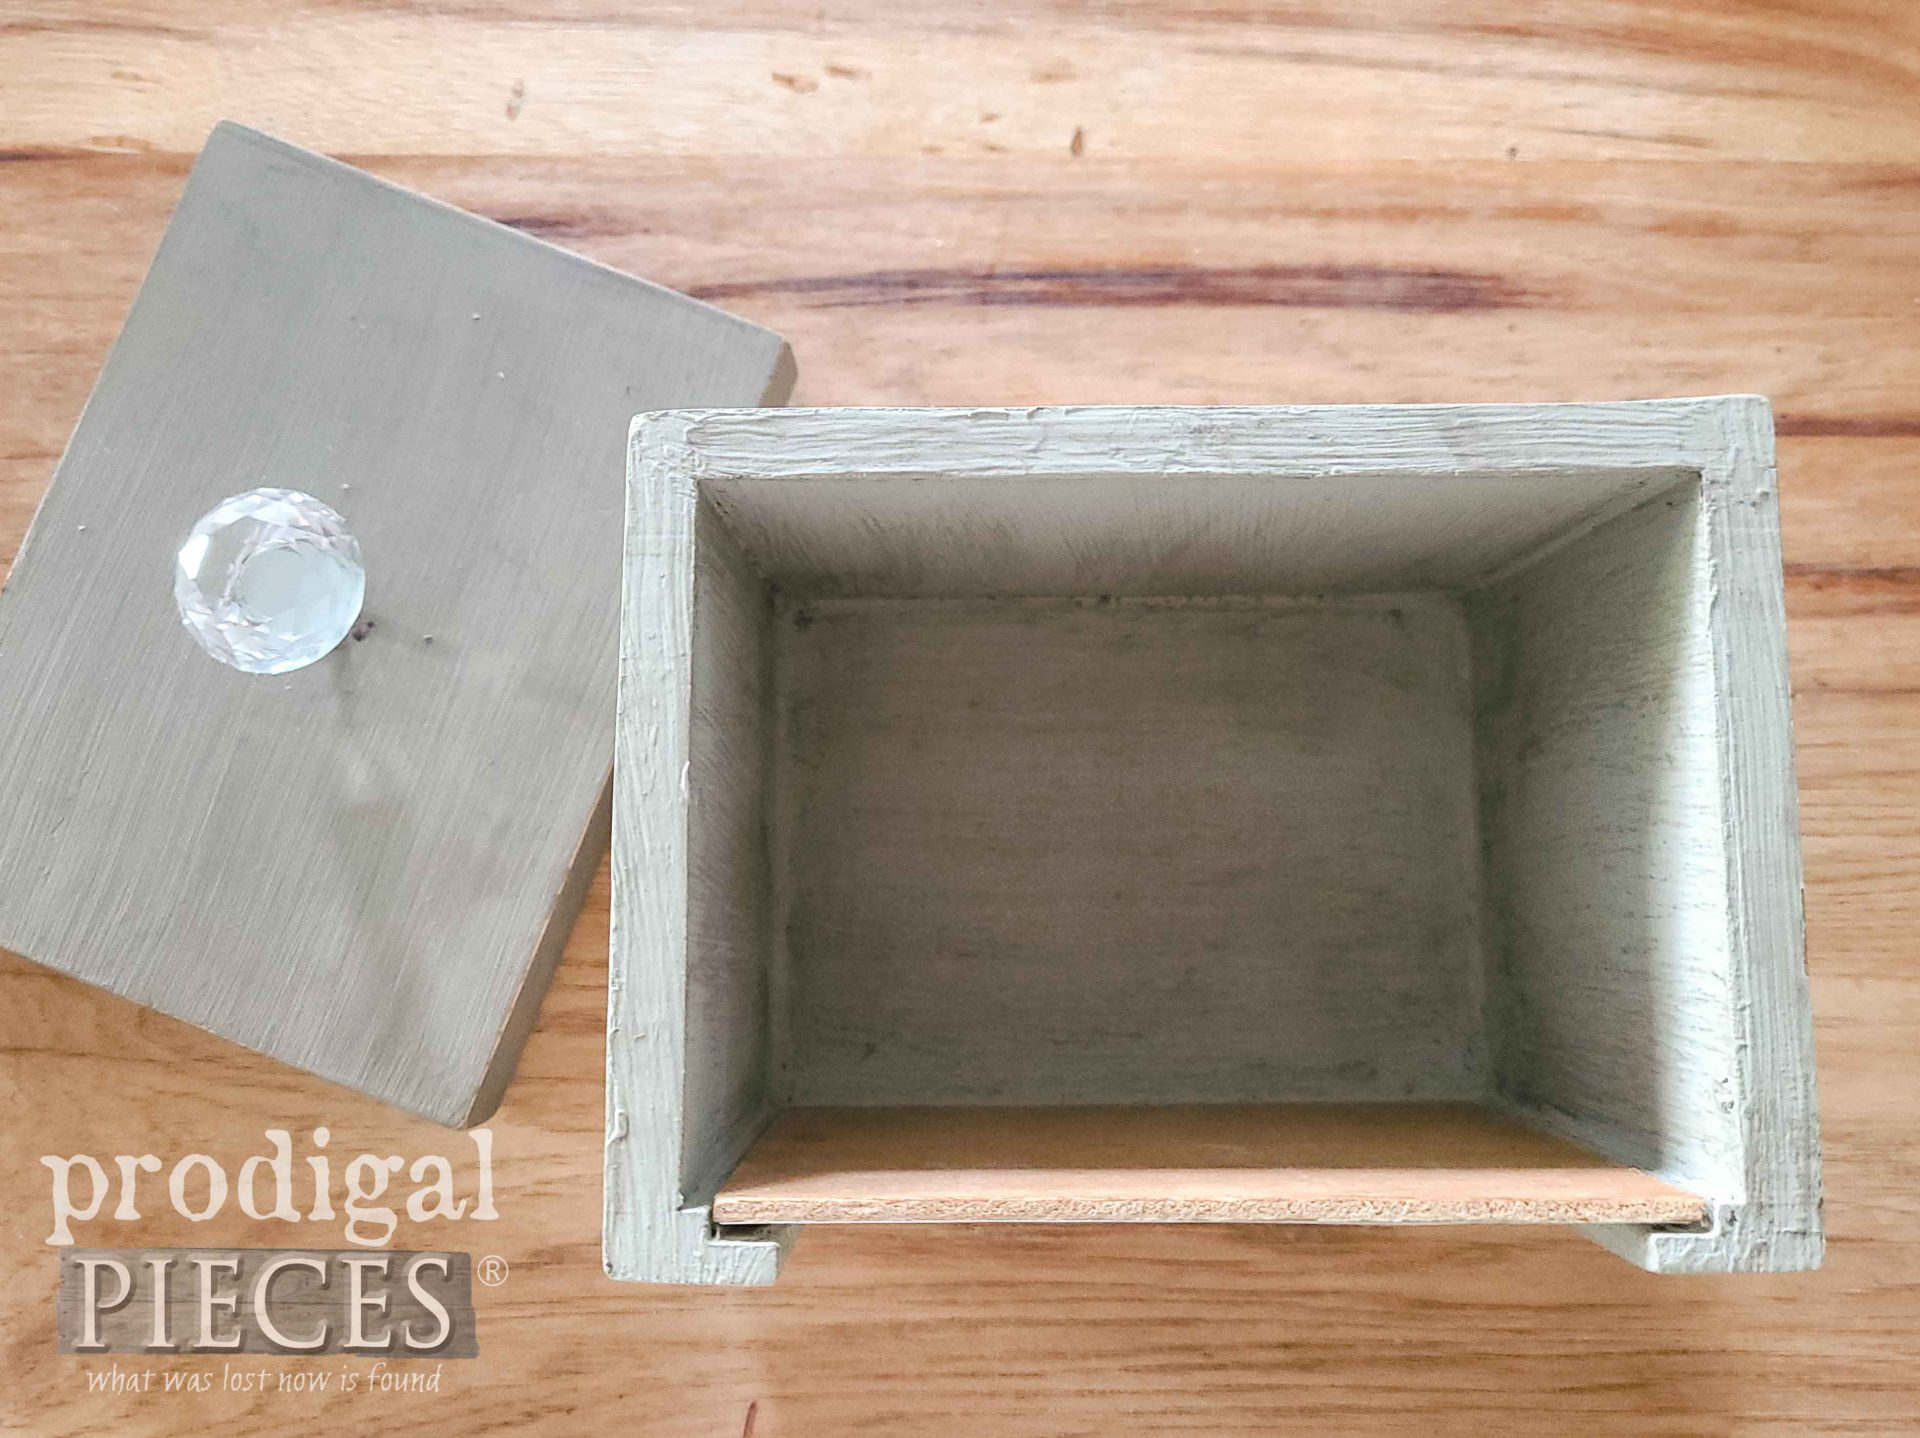 Inside Upcycled Tea Box for Farmhouse Decor | prodigalpieces.com #prodigalpieces #tea